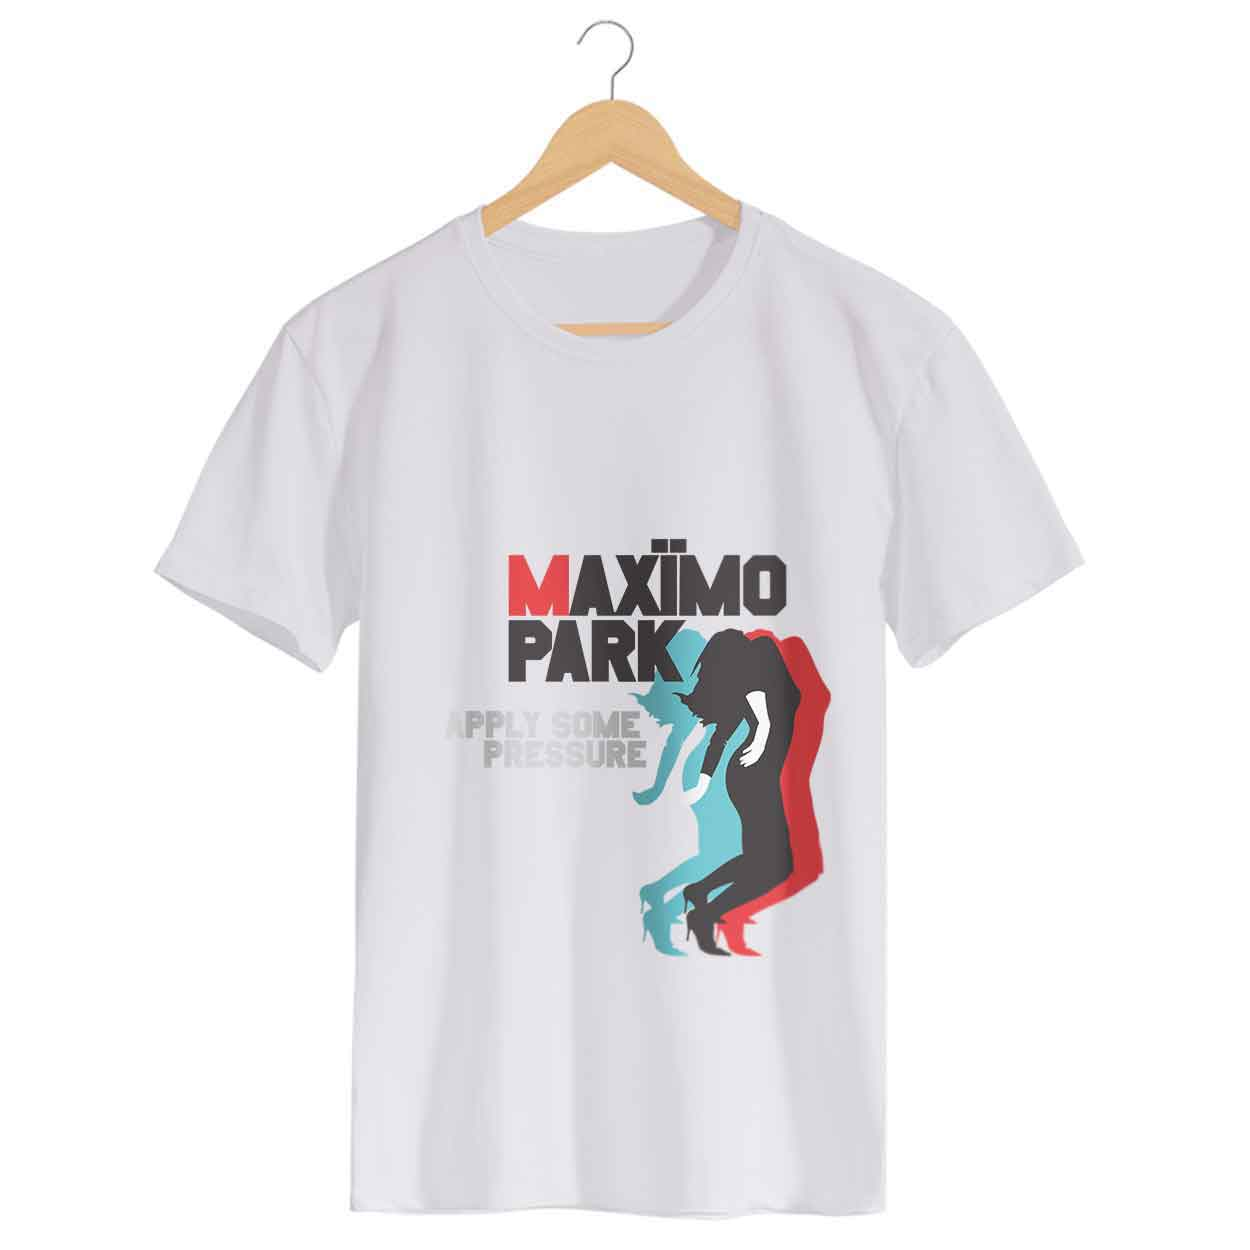 Camiseta Apply Some Pressure - Maximo Park - Masculino